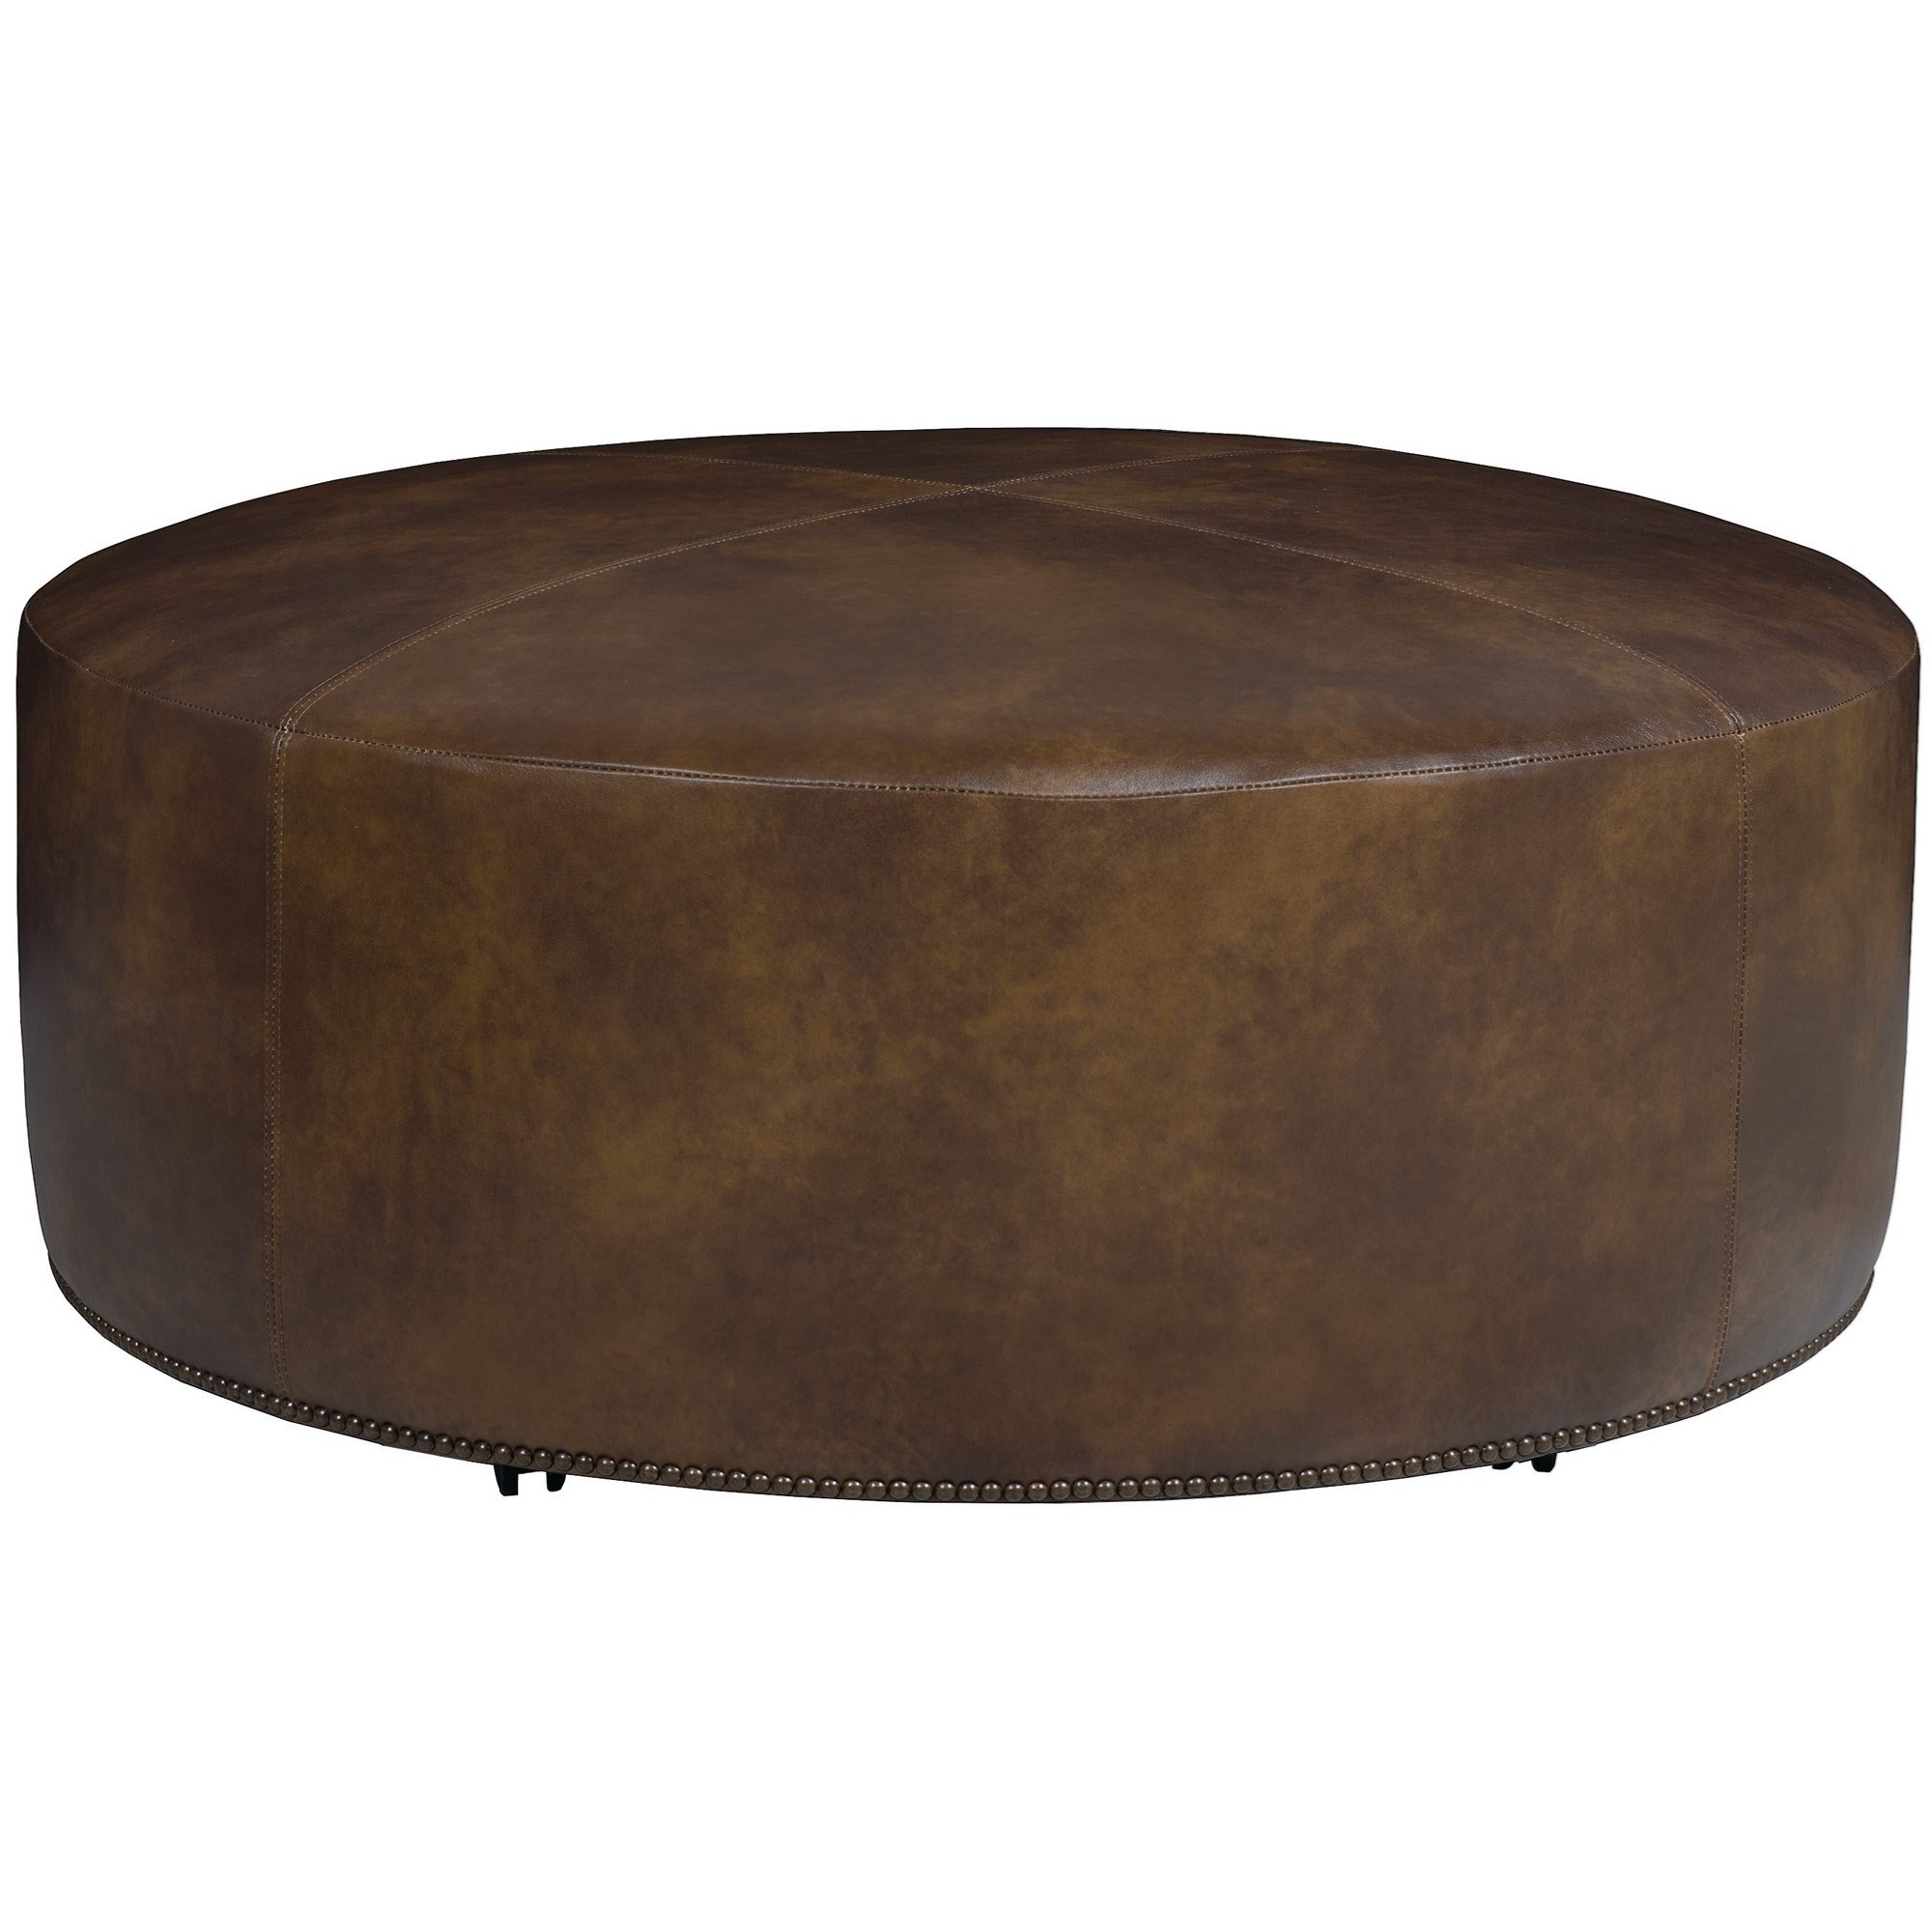 "Lolo Round 48"" Cocktail Ottoman by Bernhardt at Sprintz Furniture"